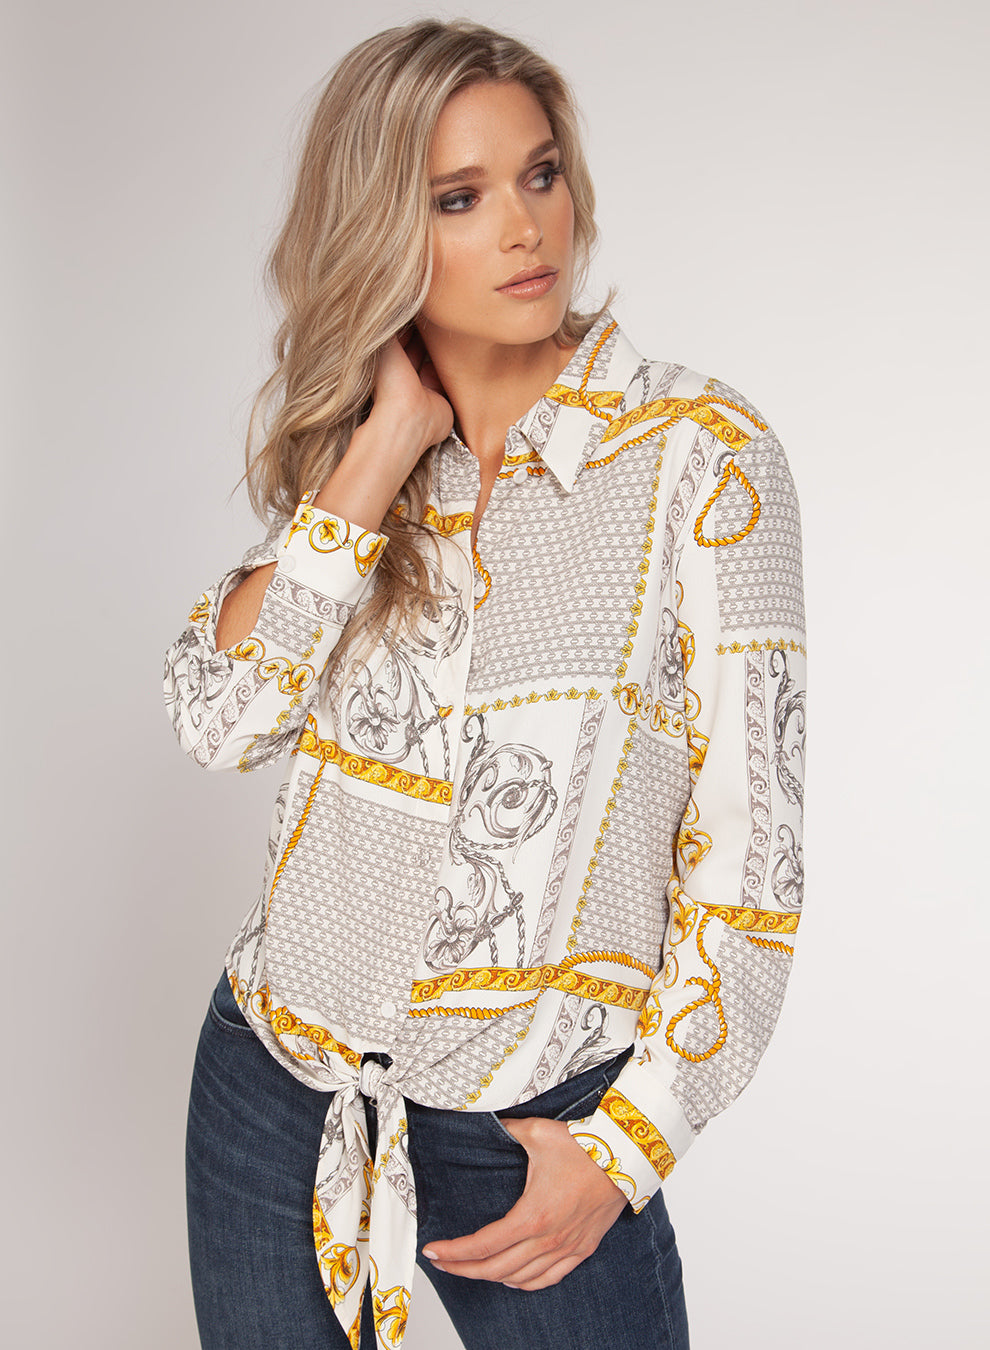 LONG-SLEEVED BLOUSE W/ FRONT TIE - GREY / WHITE / MUSTARD